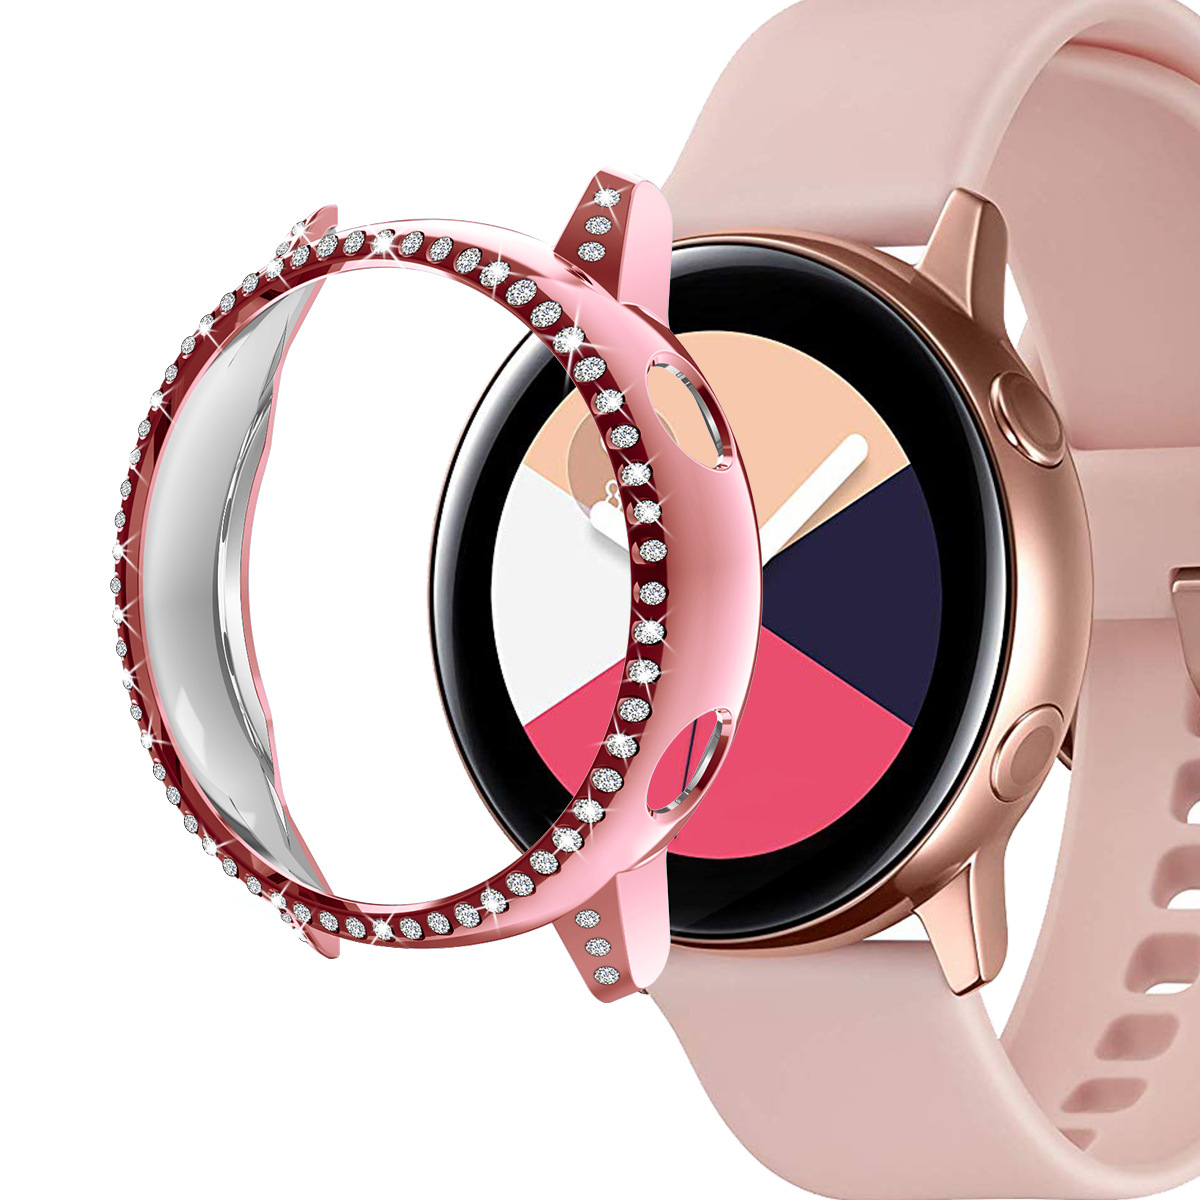 40mm PC Bumper Case Protective Cover For Samsung Galaxy Watch Active Women Girl Bling Shiny Crystal Diamond Watch Case|Watch Cases| |  - title=